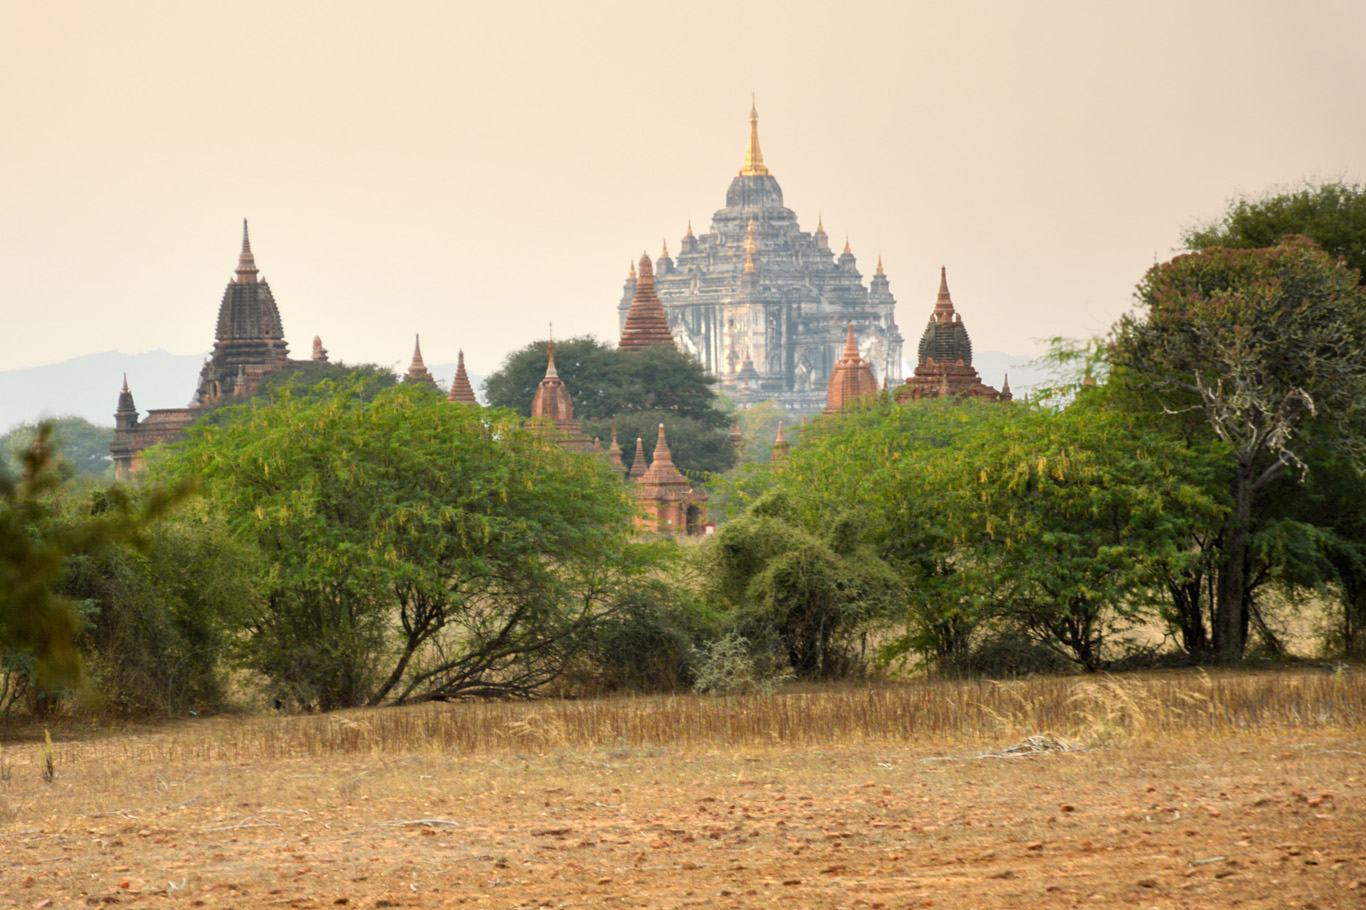 Temples in Bagan - Thatbyinnyu Temple in the background